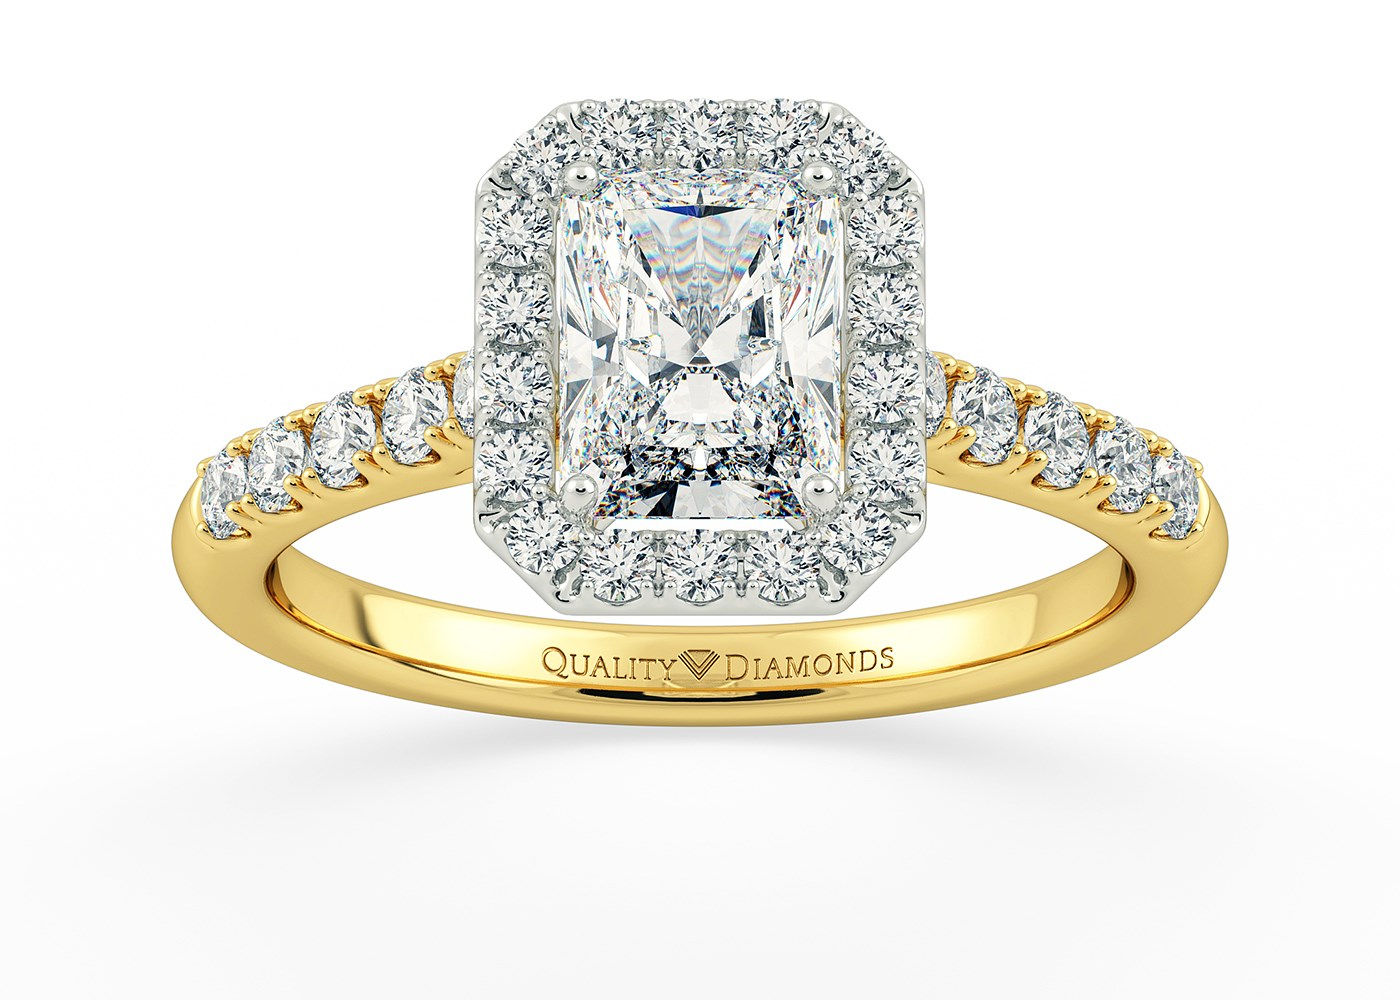 Halo Solitaire Diamond Rings